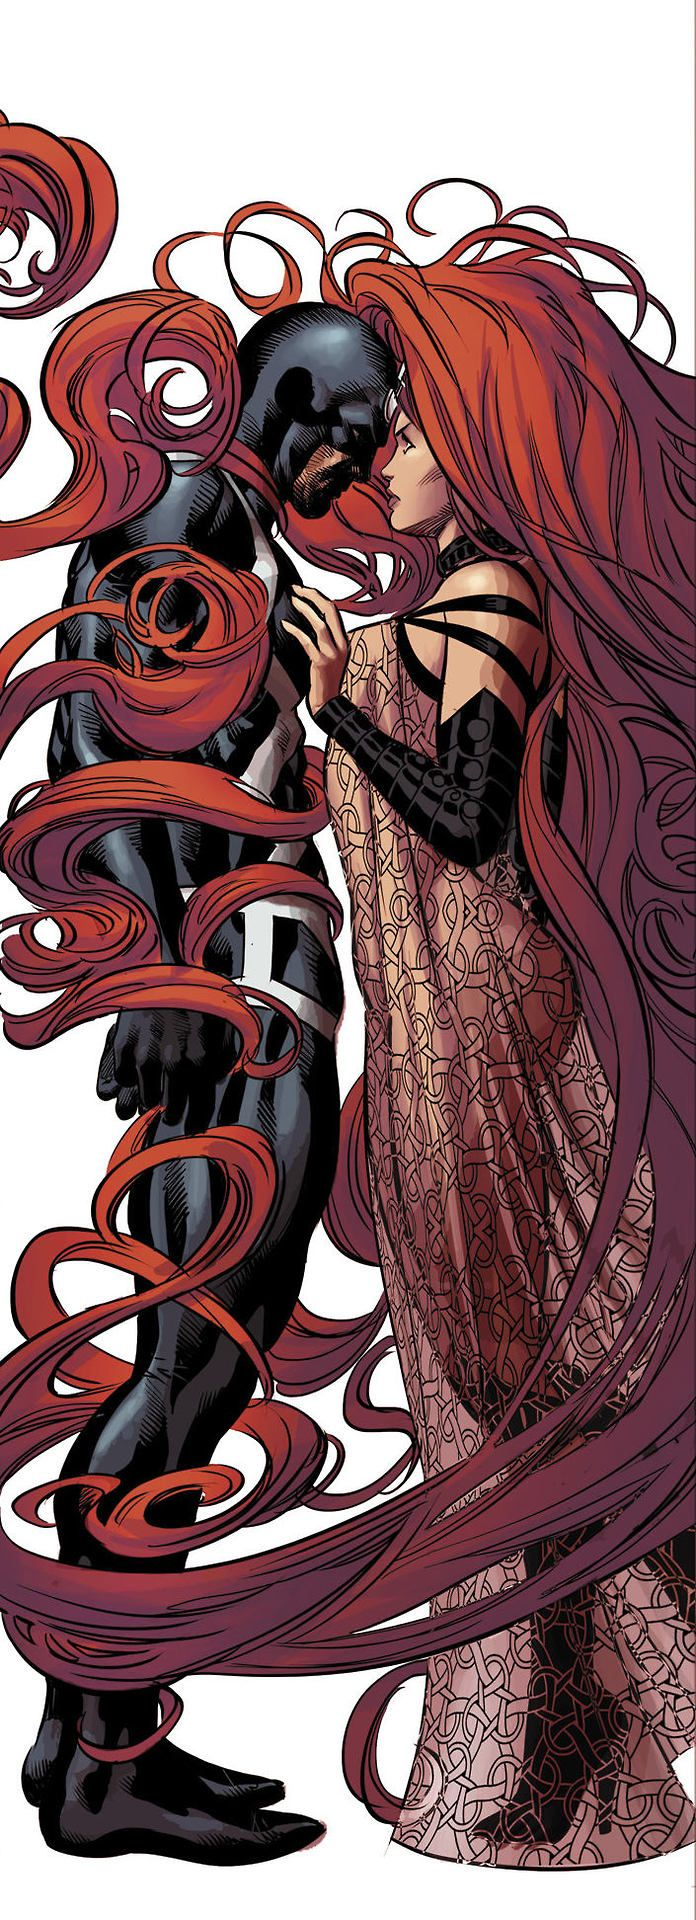 I feel a connect with Medusa and her crazy hair. I guess my brothers were right when they called me Medusa. Blackbolt and Medusa by Mike Deodato Jr.